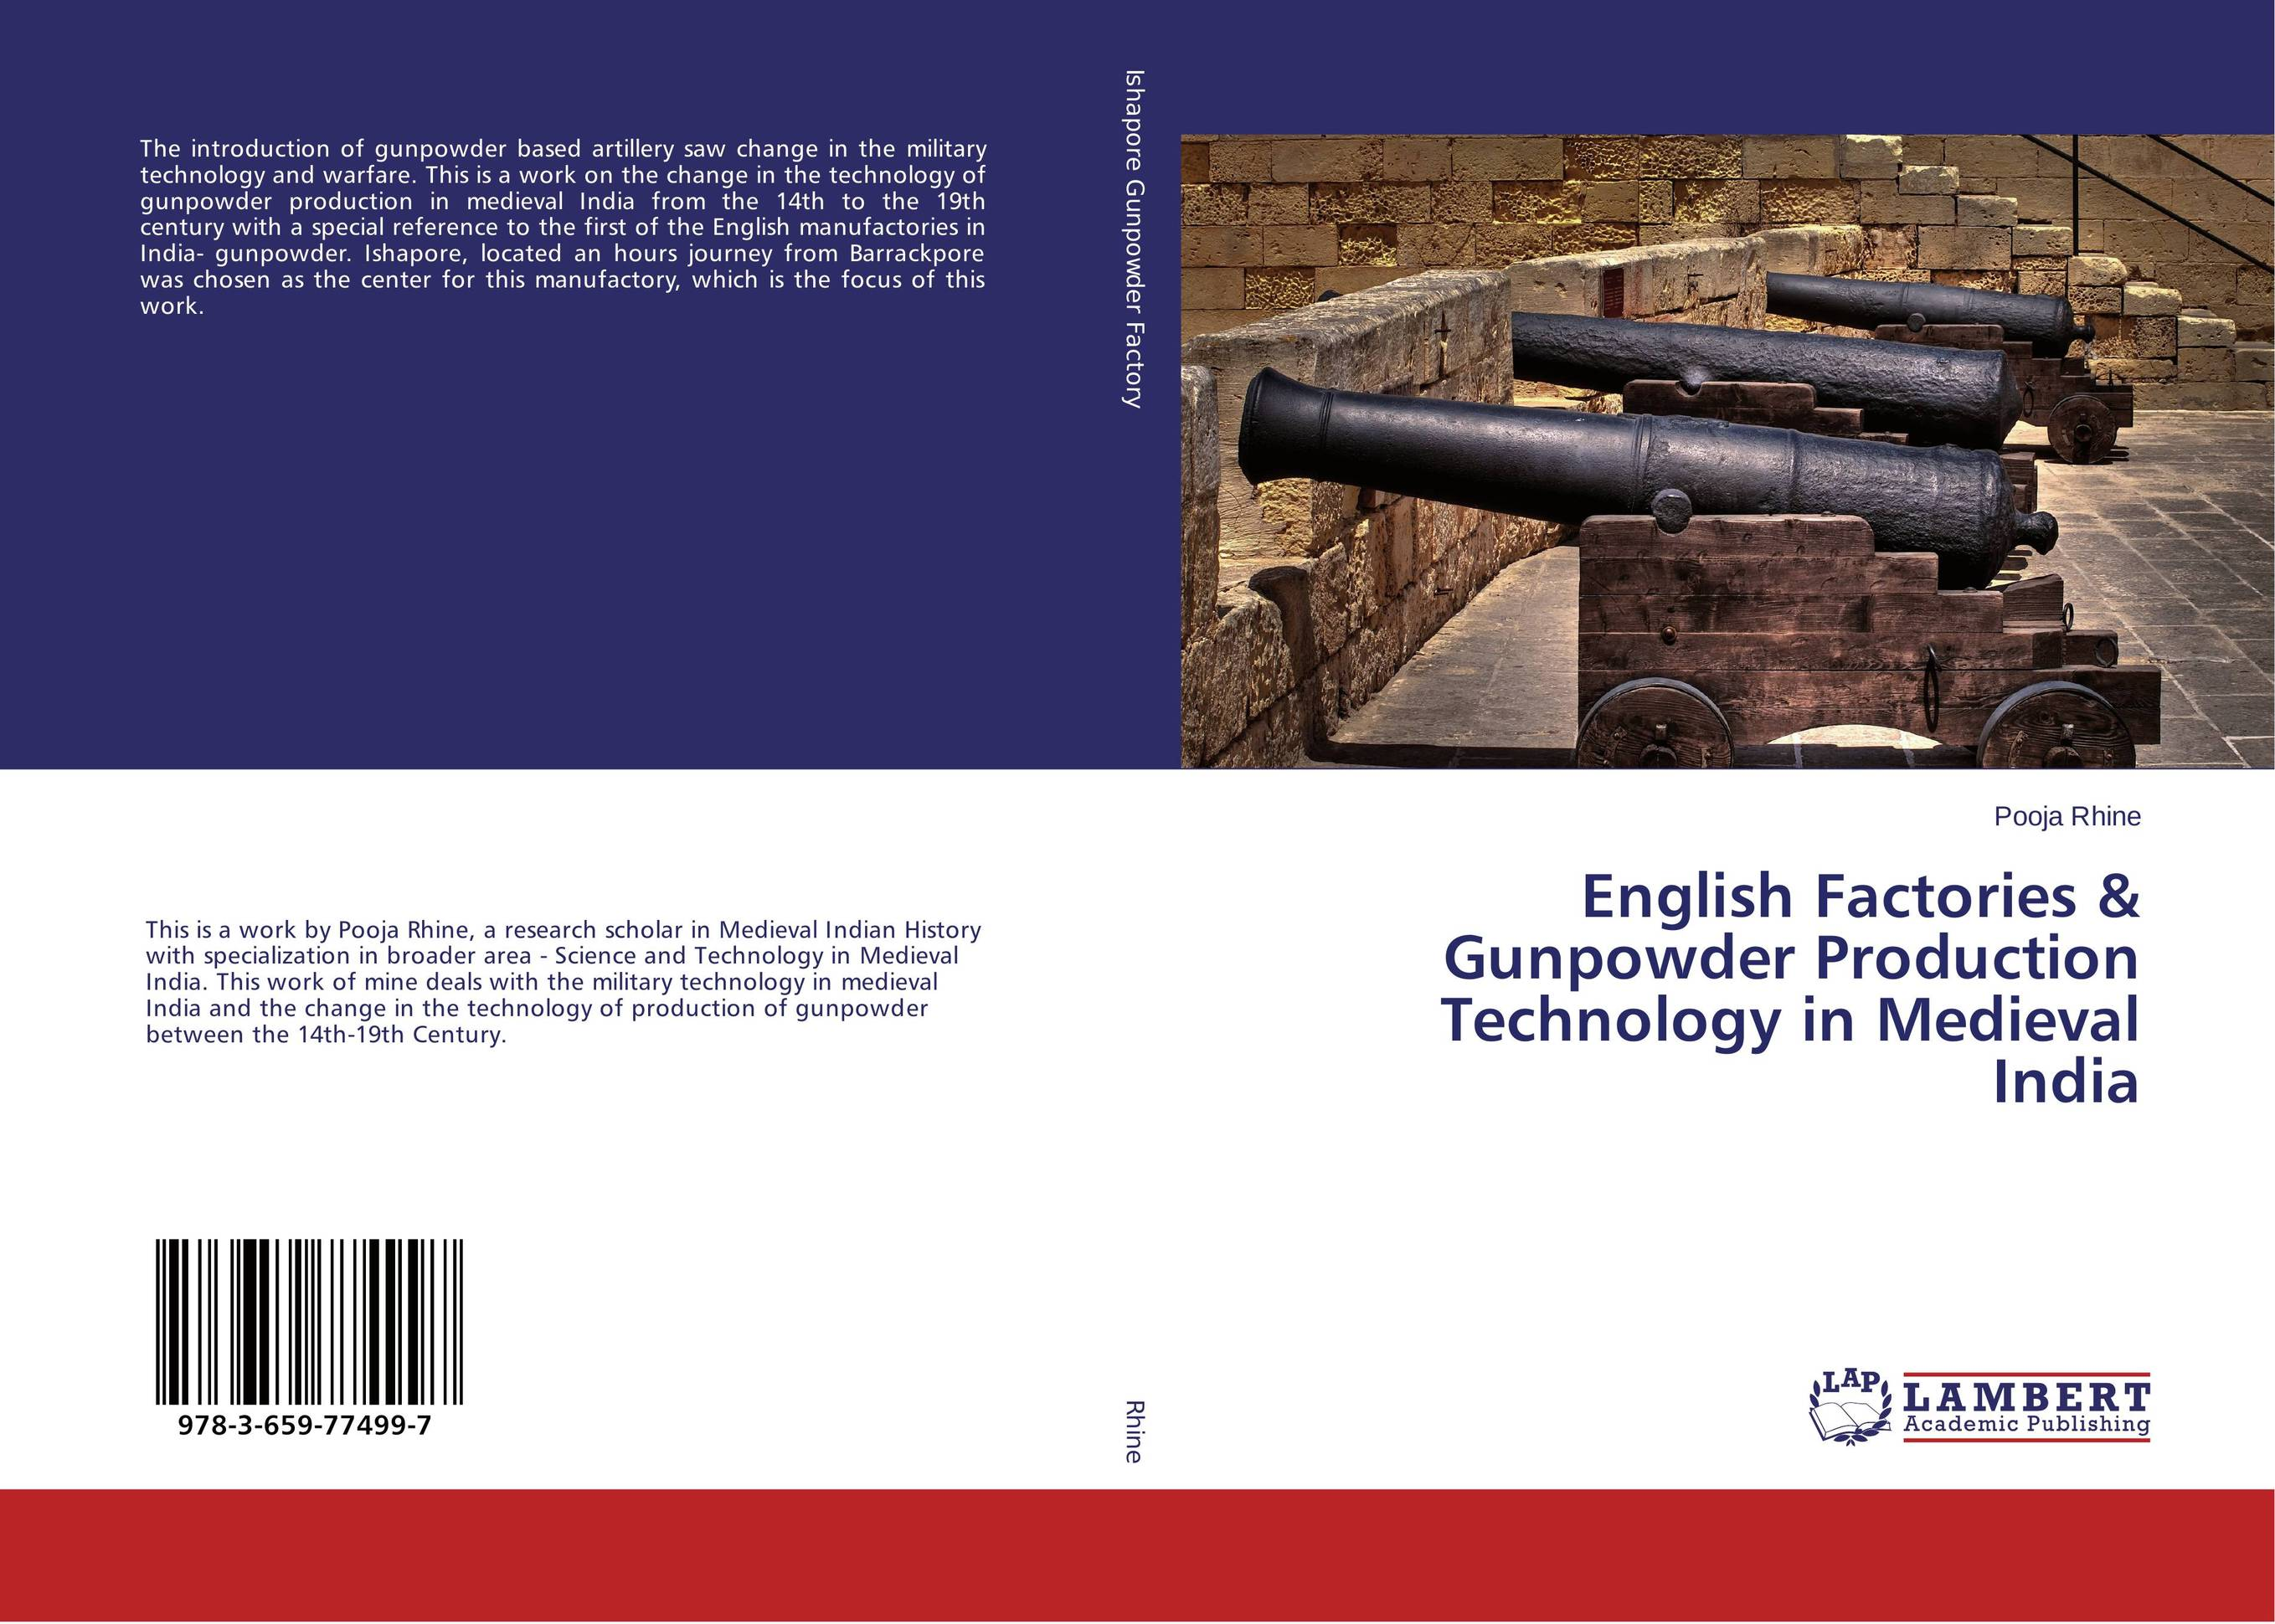 English Factories & Gunpowder Production Technology in Medieval India ramesh patil dnyan patil and hemant ghate ecology of insect fauna from satpuda ranges of maharashtra india